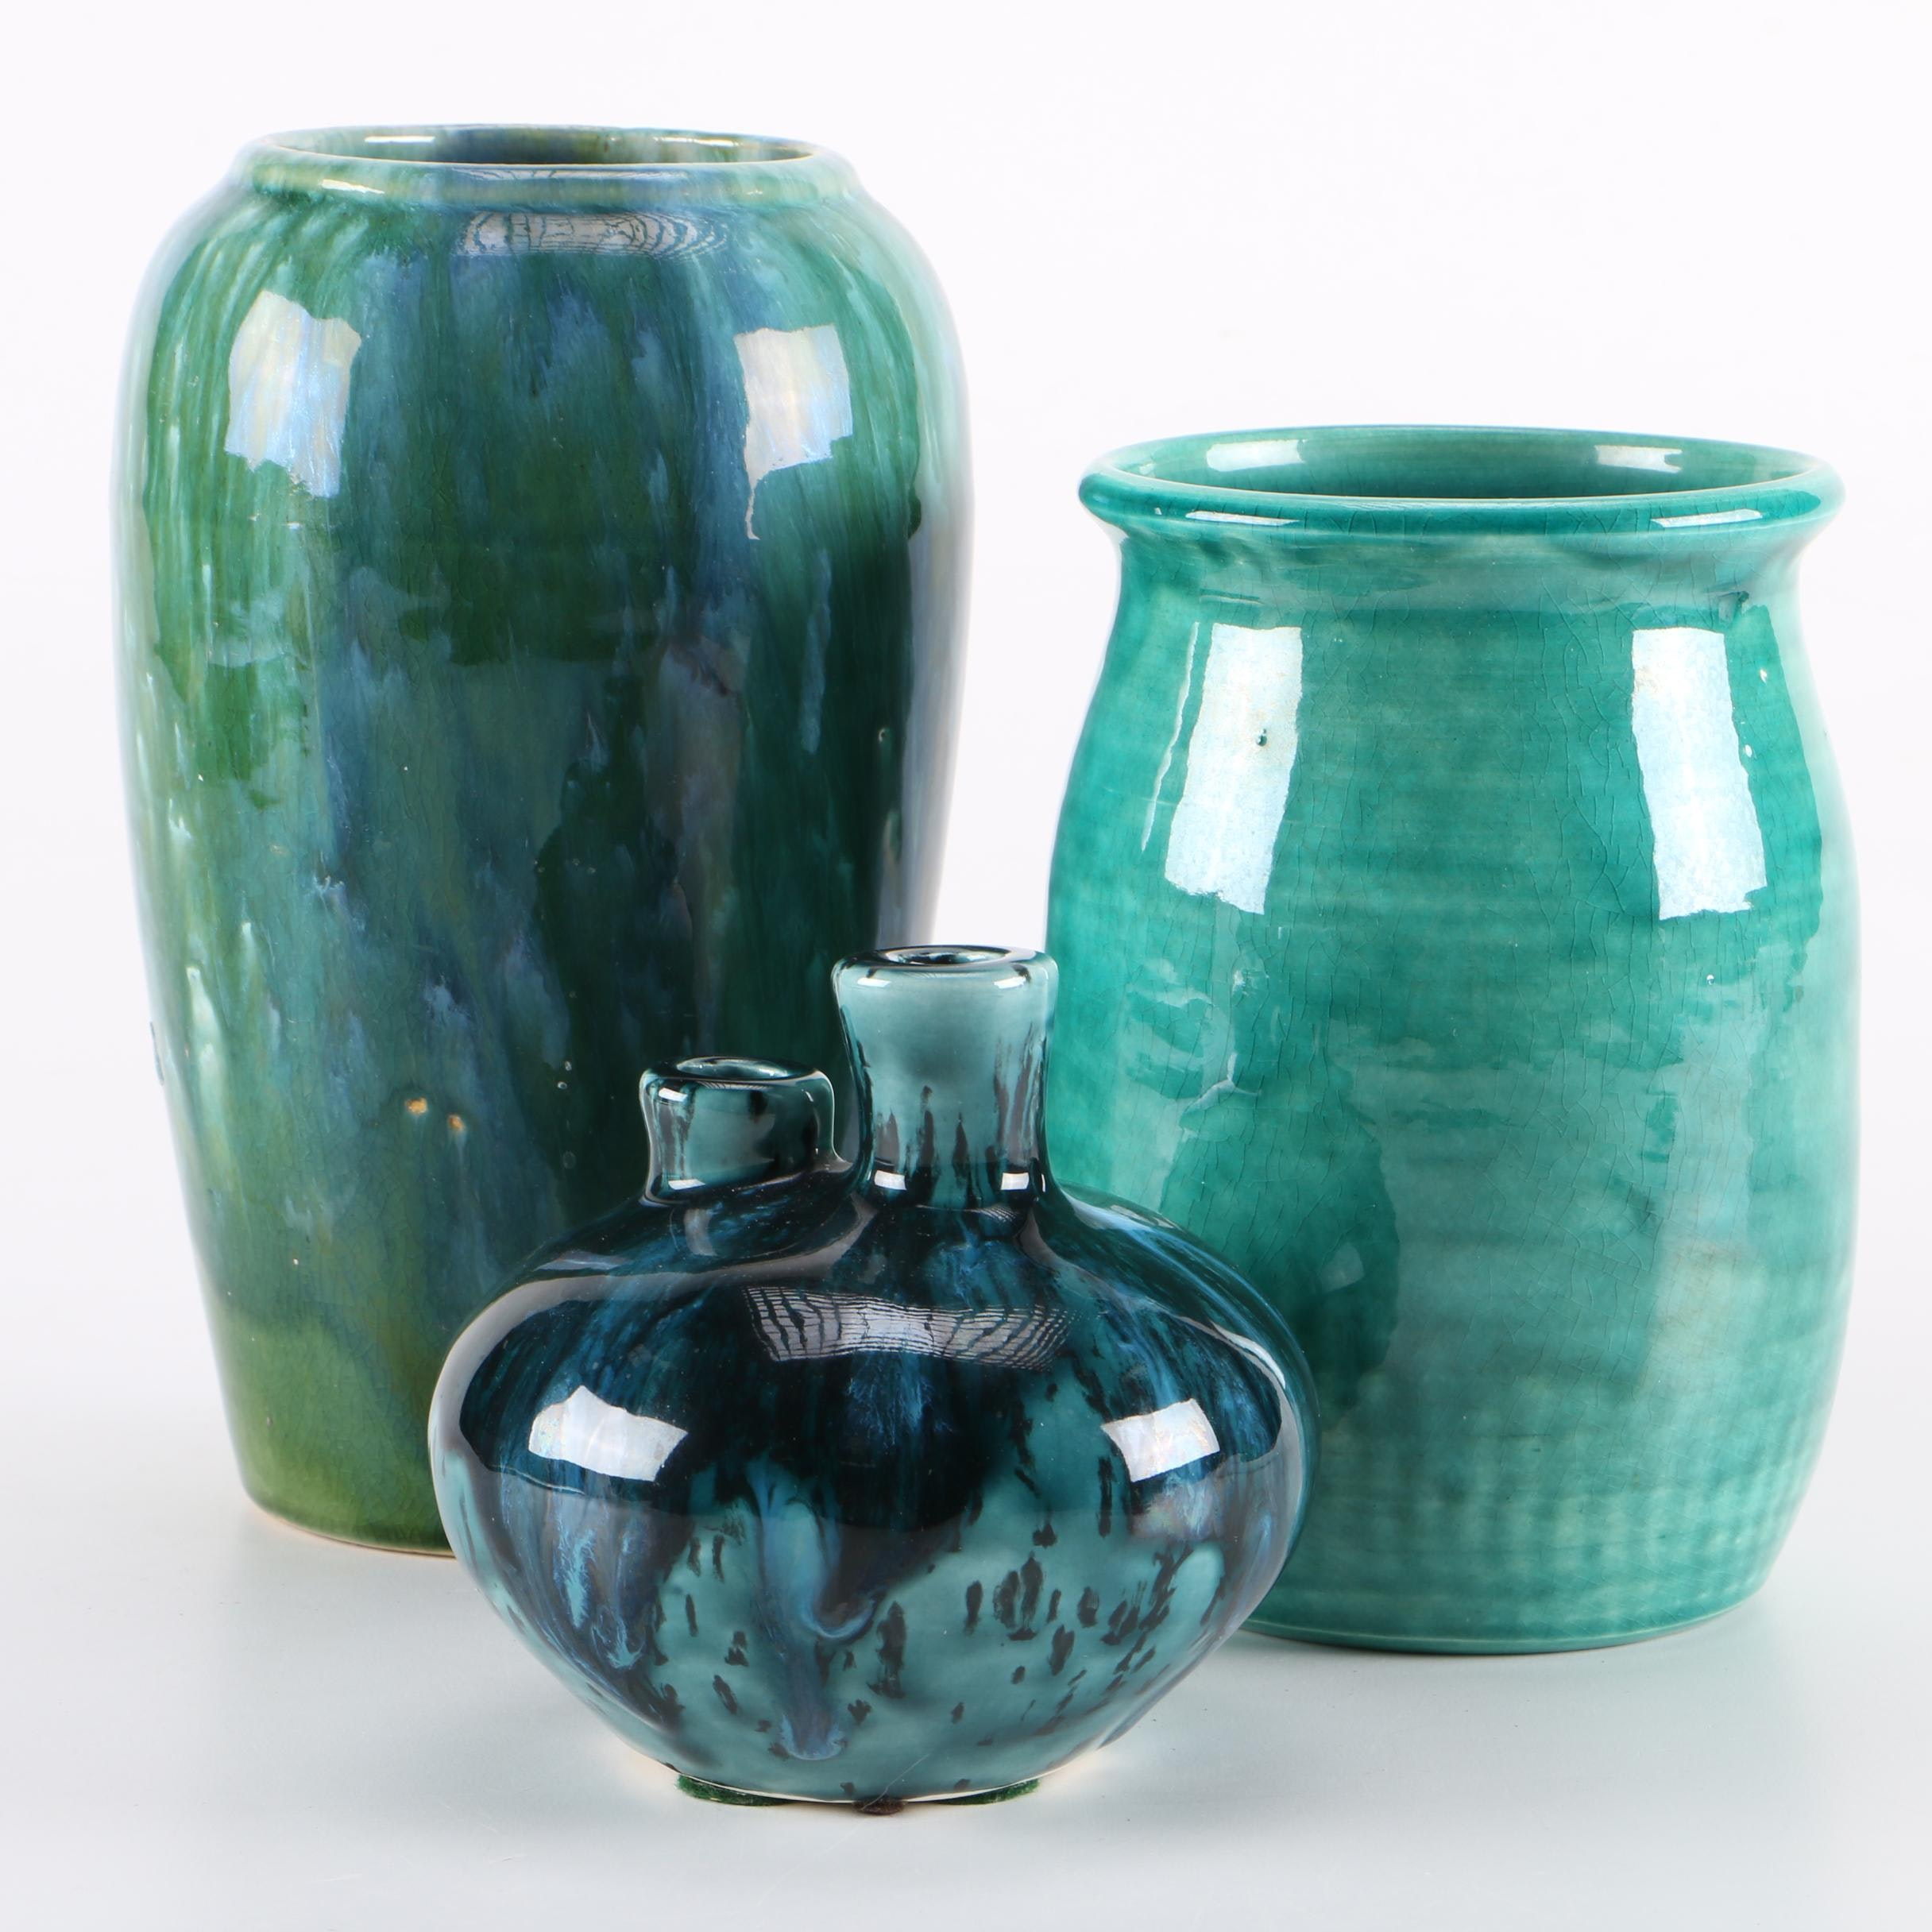 Green Glaze Art Pottery Including Signed Pieces